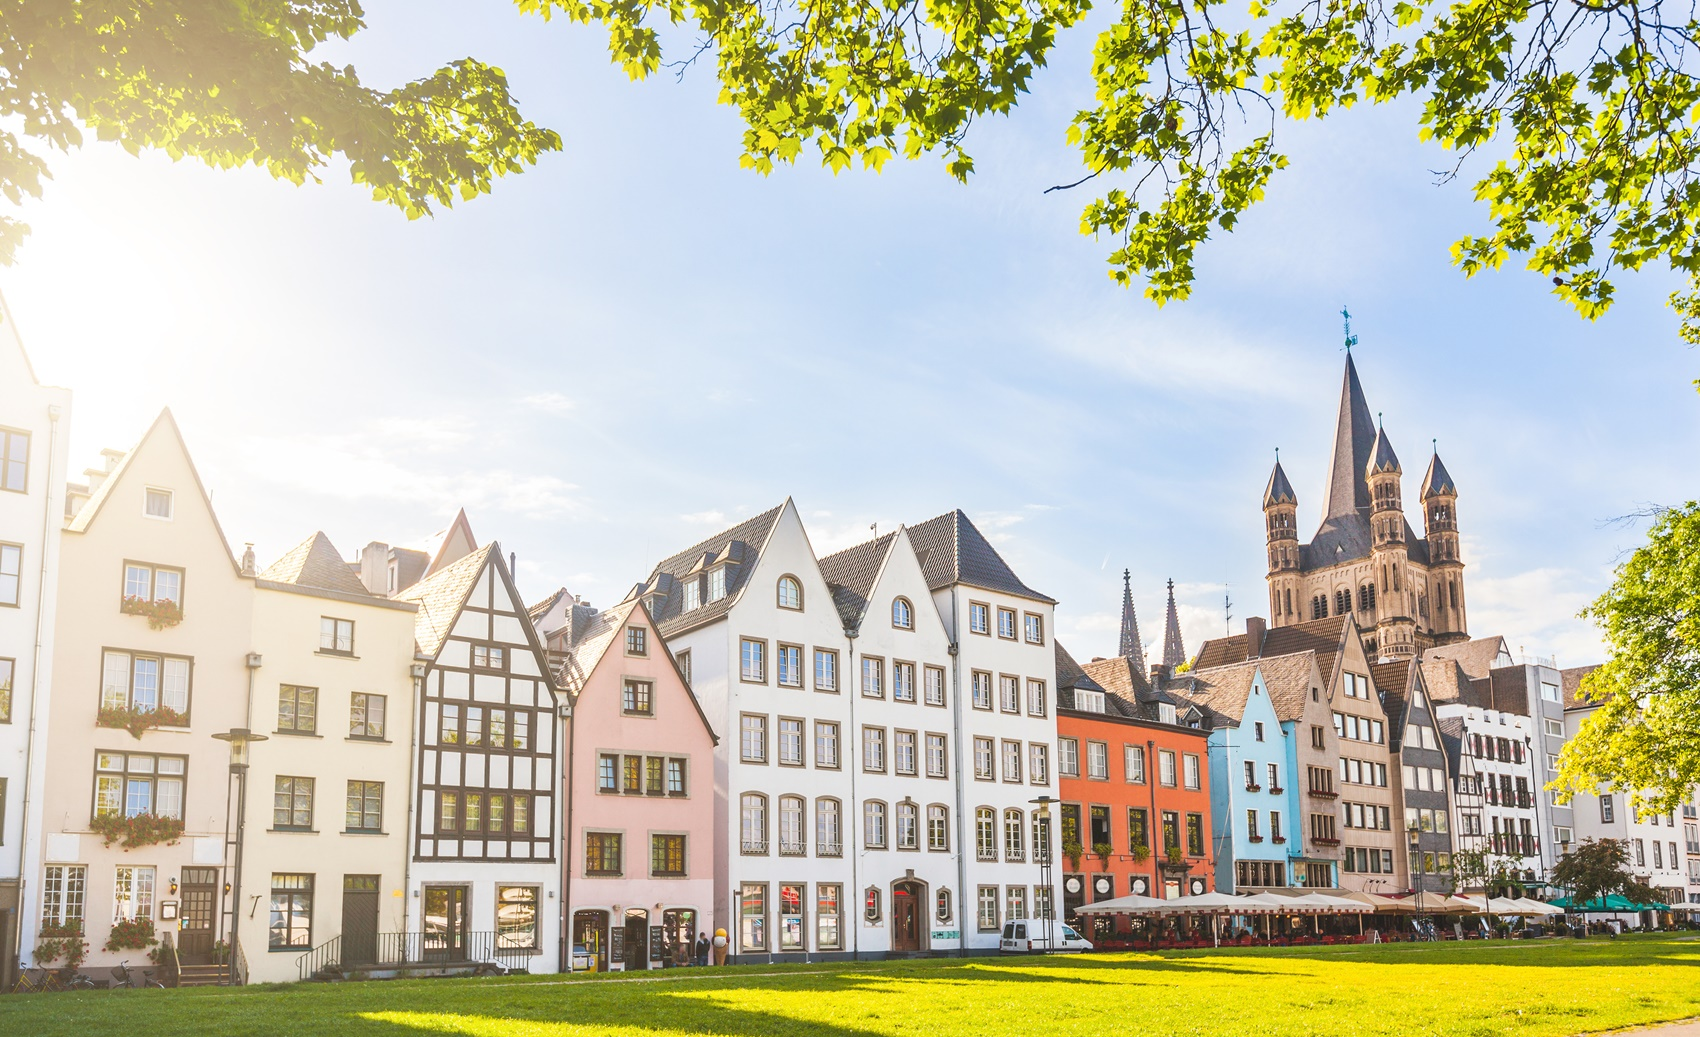 Houses and park in Cologne, Germany